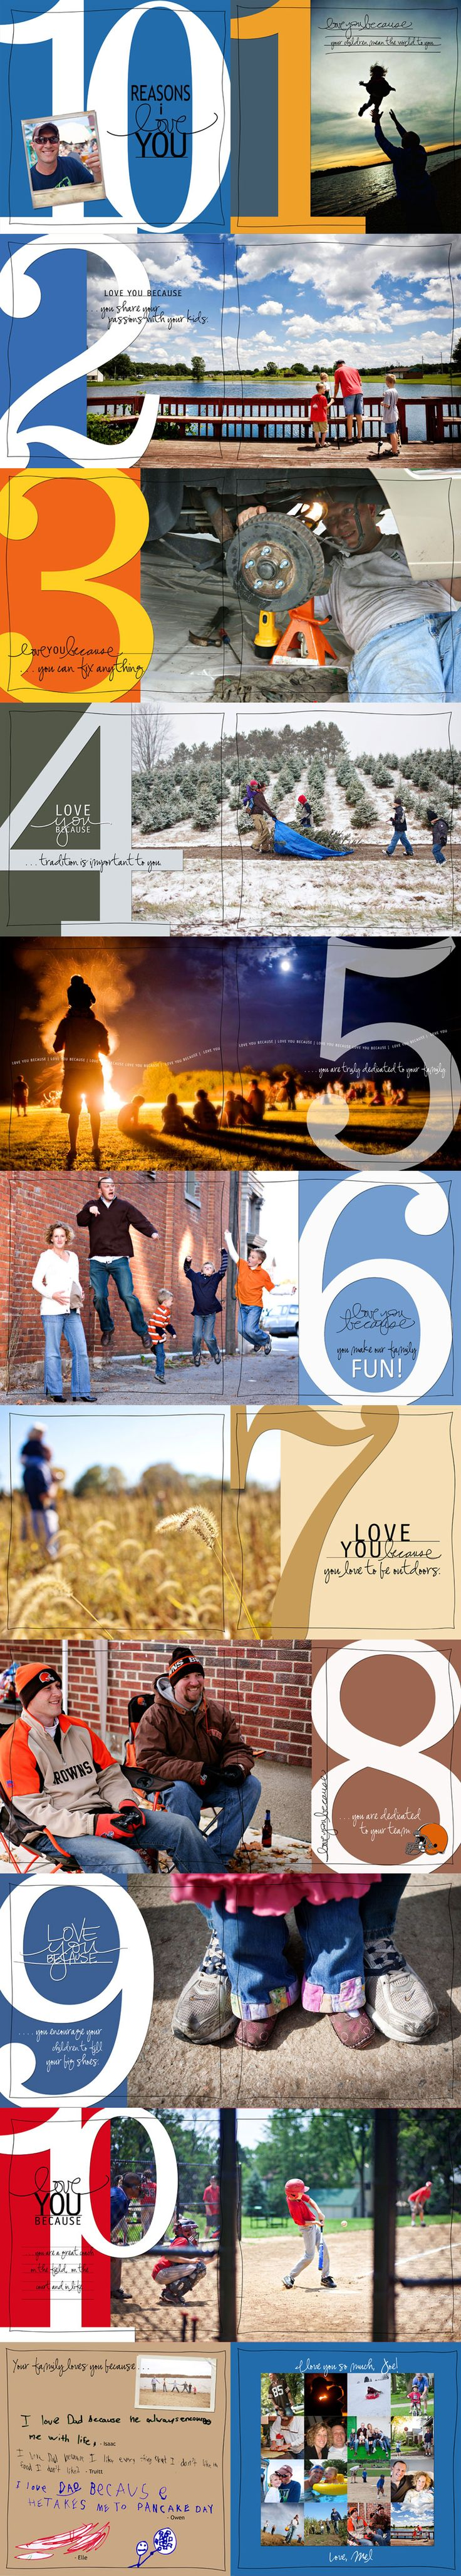 awesome photo books. i love how the backgrounds & numbers match the pictures.: Ali Edward, Gifts Cards Photo, Good Ideas, Gifts Ideas, 10 Reasons, Cute Ideas, Father Day Photo Books, Fathers Day, Father'S Day